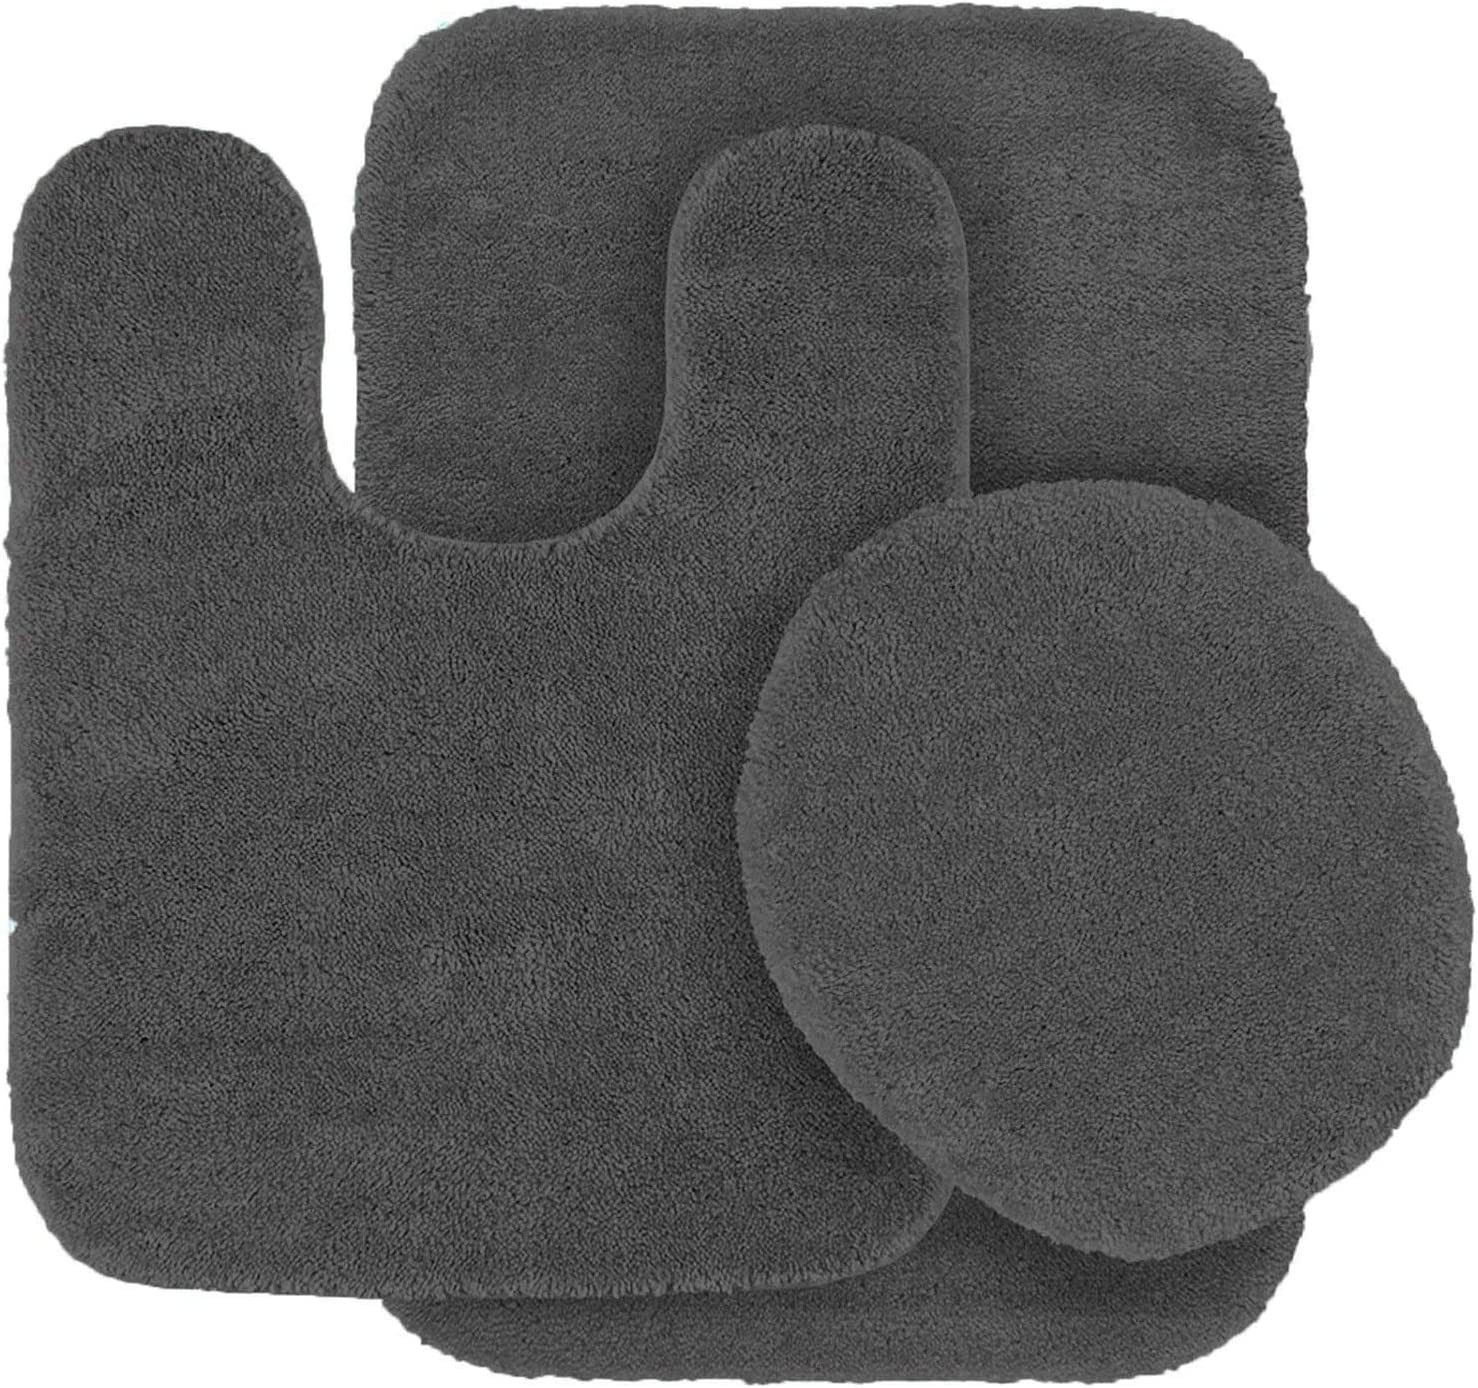 MK Home Collection 3 Piece Bathroom Rug Set Bath Rug, Contour Mat & Lid Cover Non-Slip with Rubber Backing Solid New (Charcoal/Dark Grey)